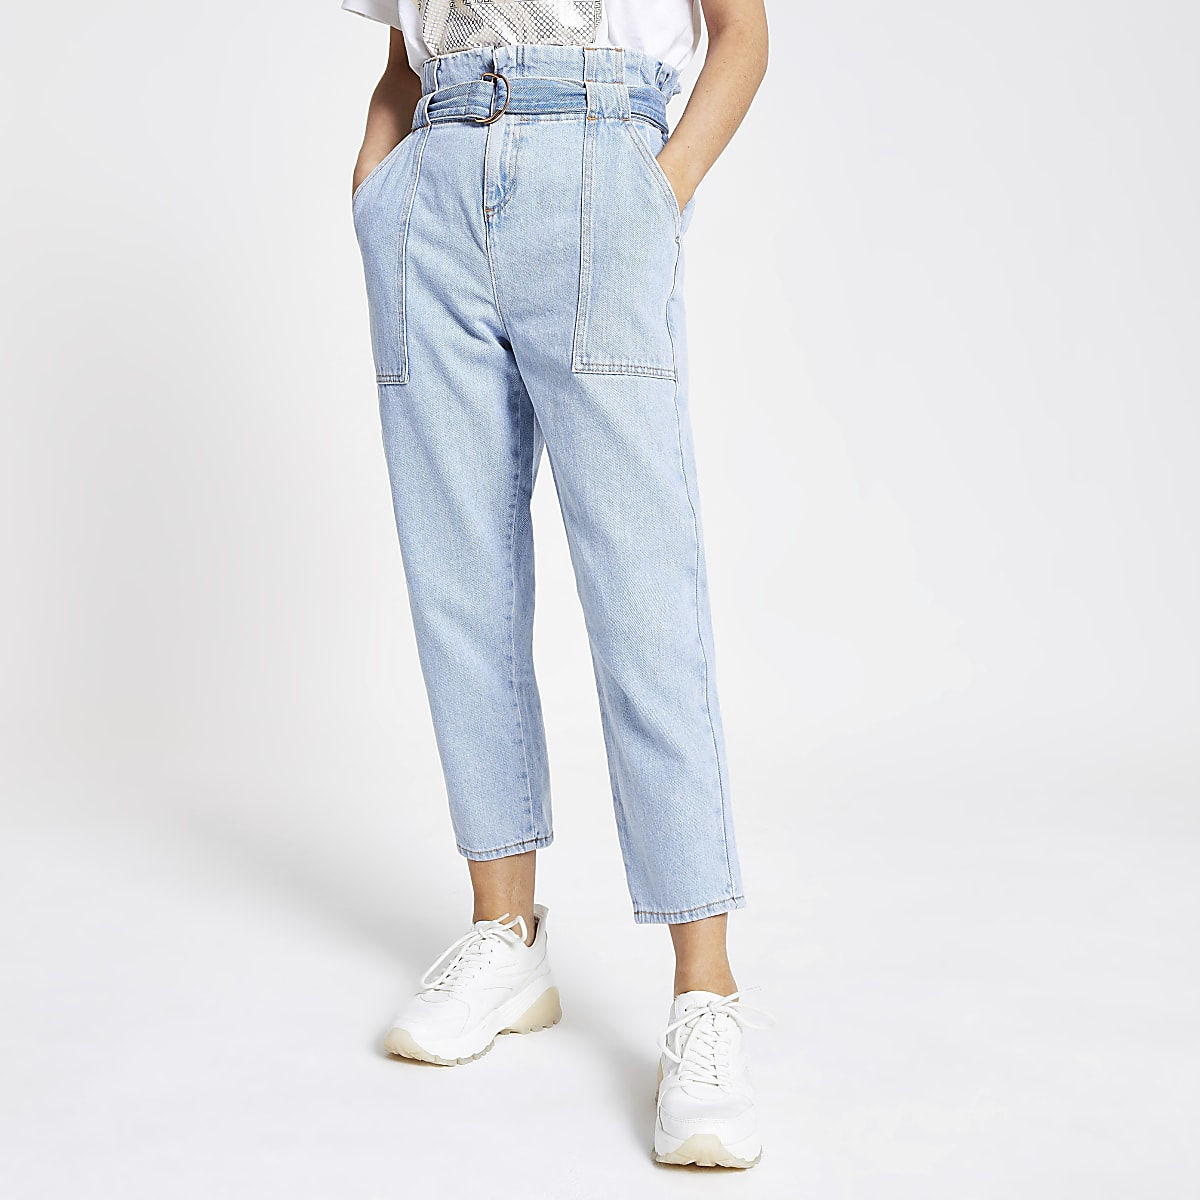 Petite light blue paperbag jeans